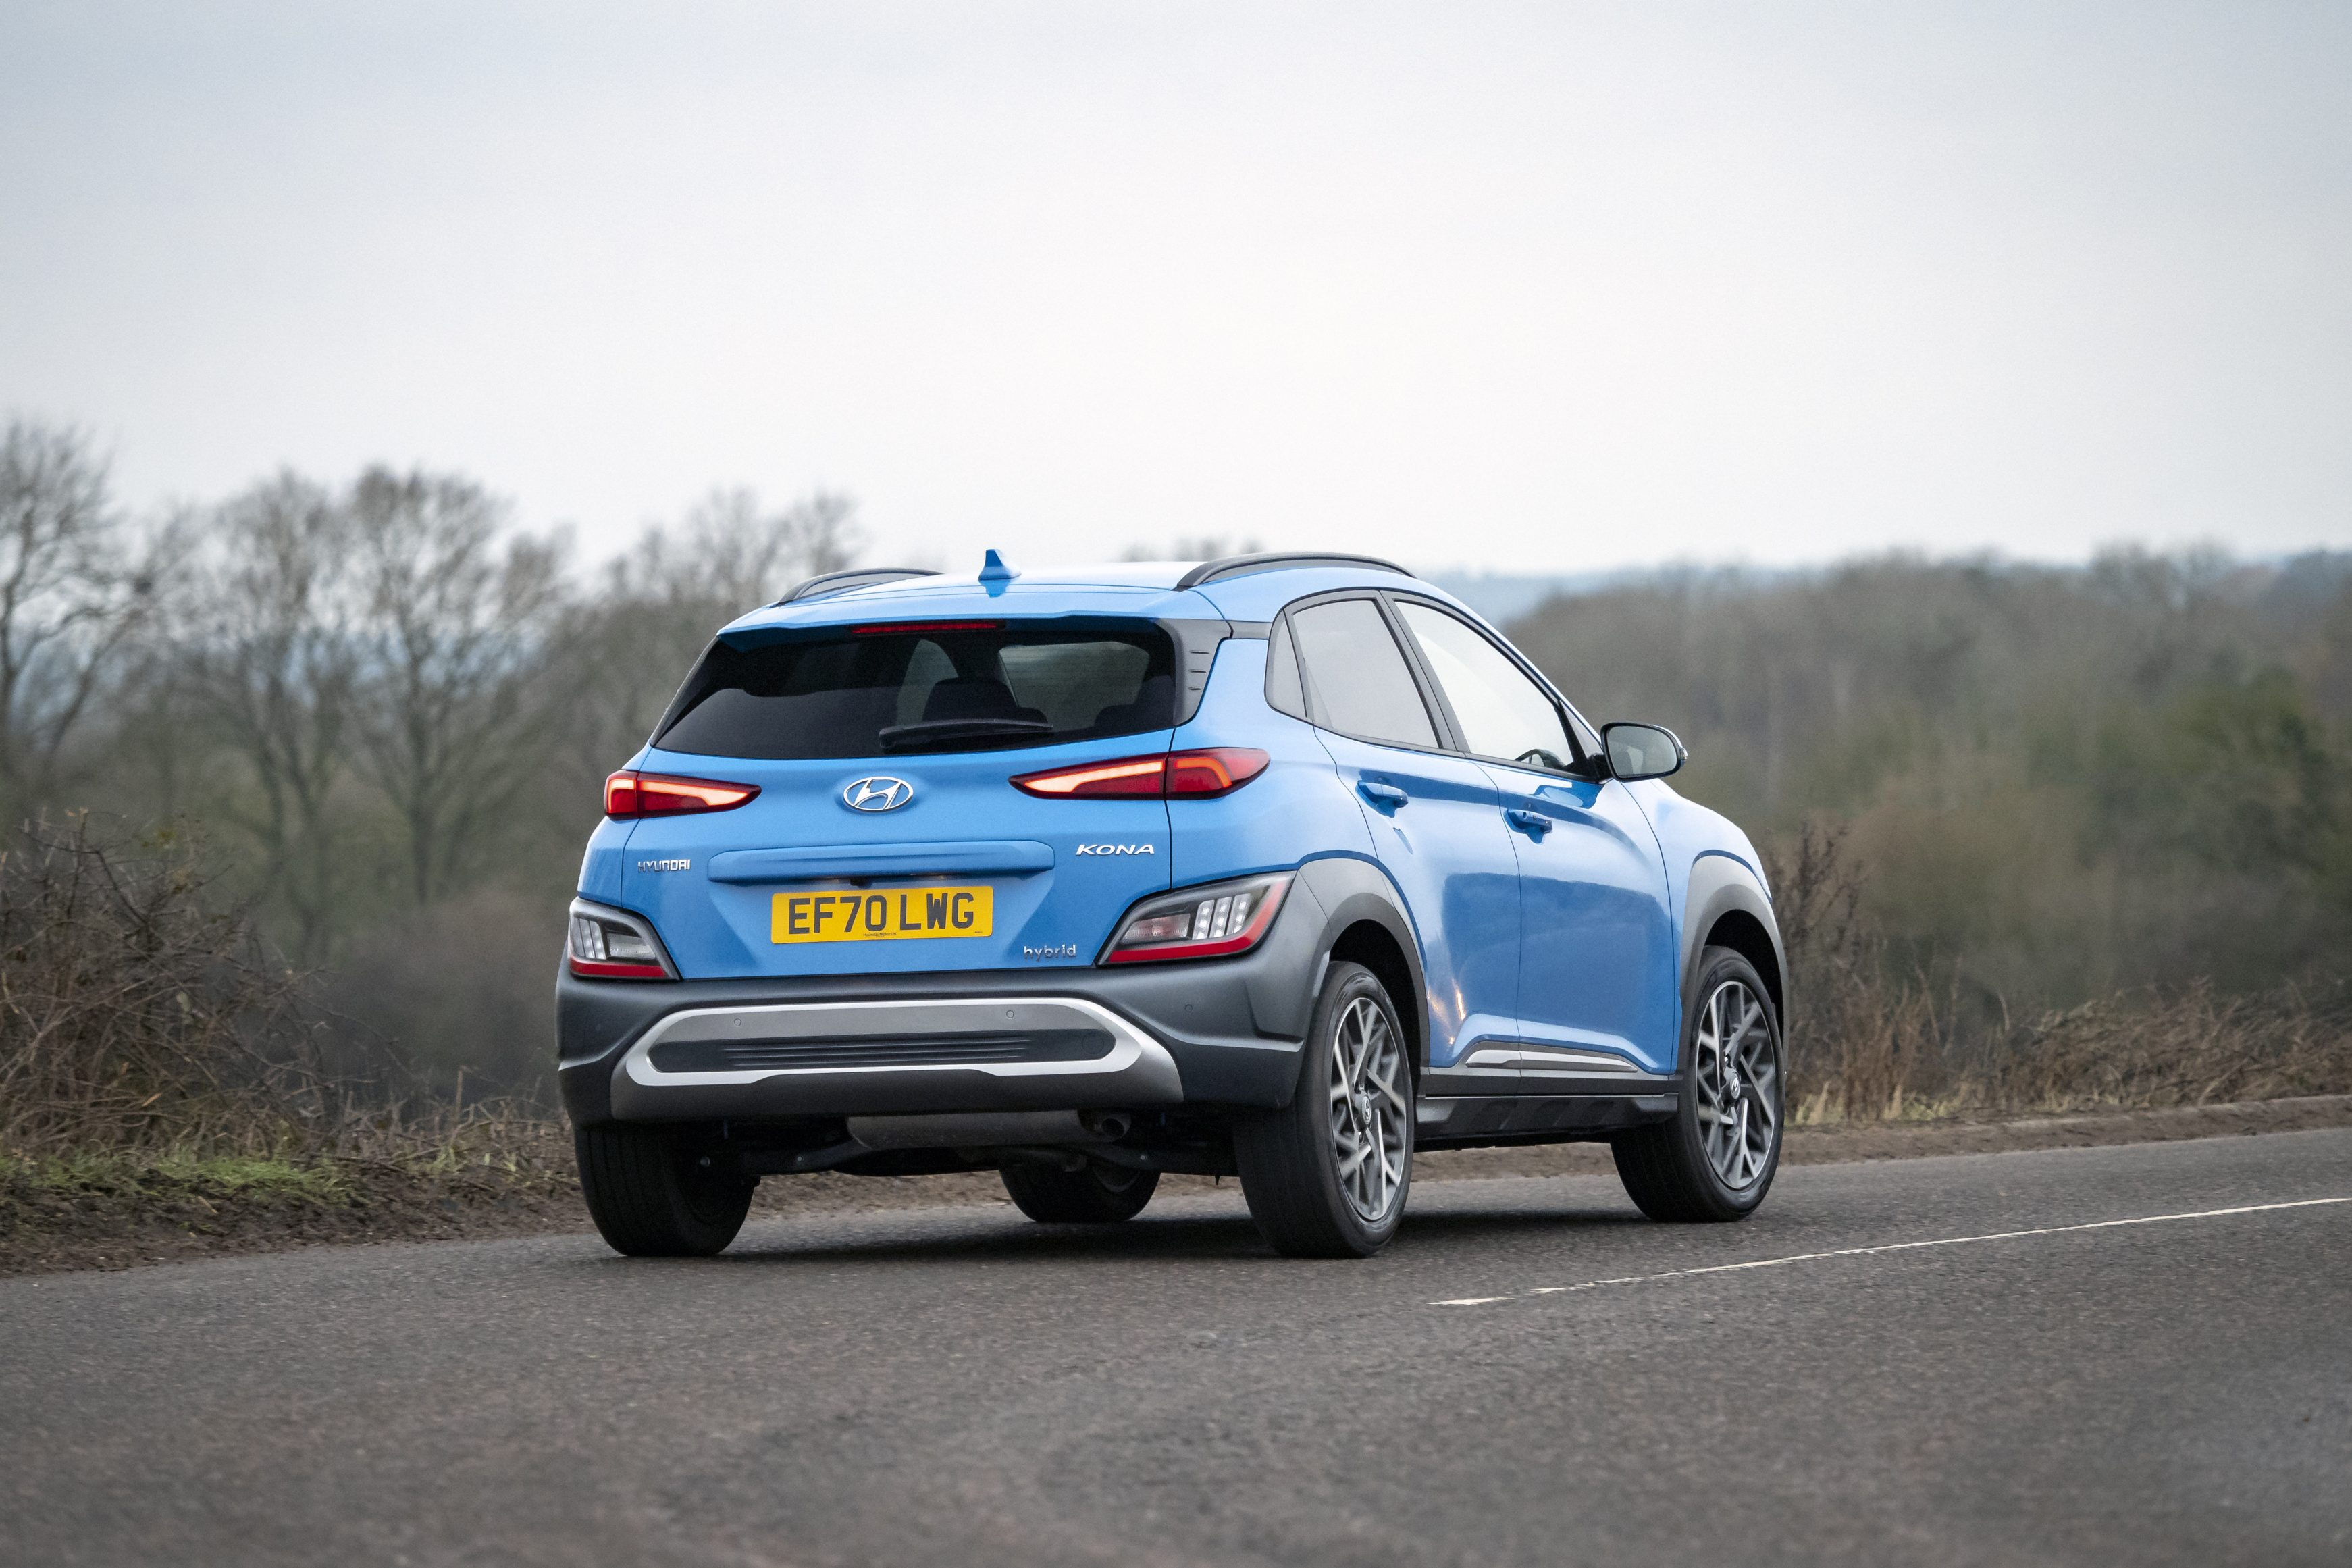 The 2021 Hyundai Kona Hybrid has a compact body and sporty design that looks refreshingly modern